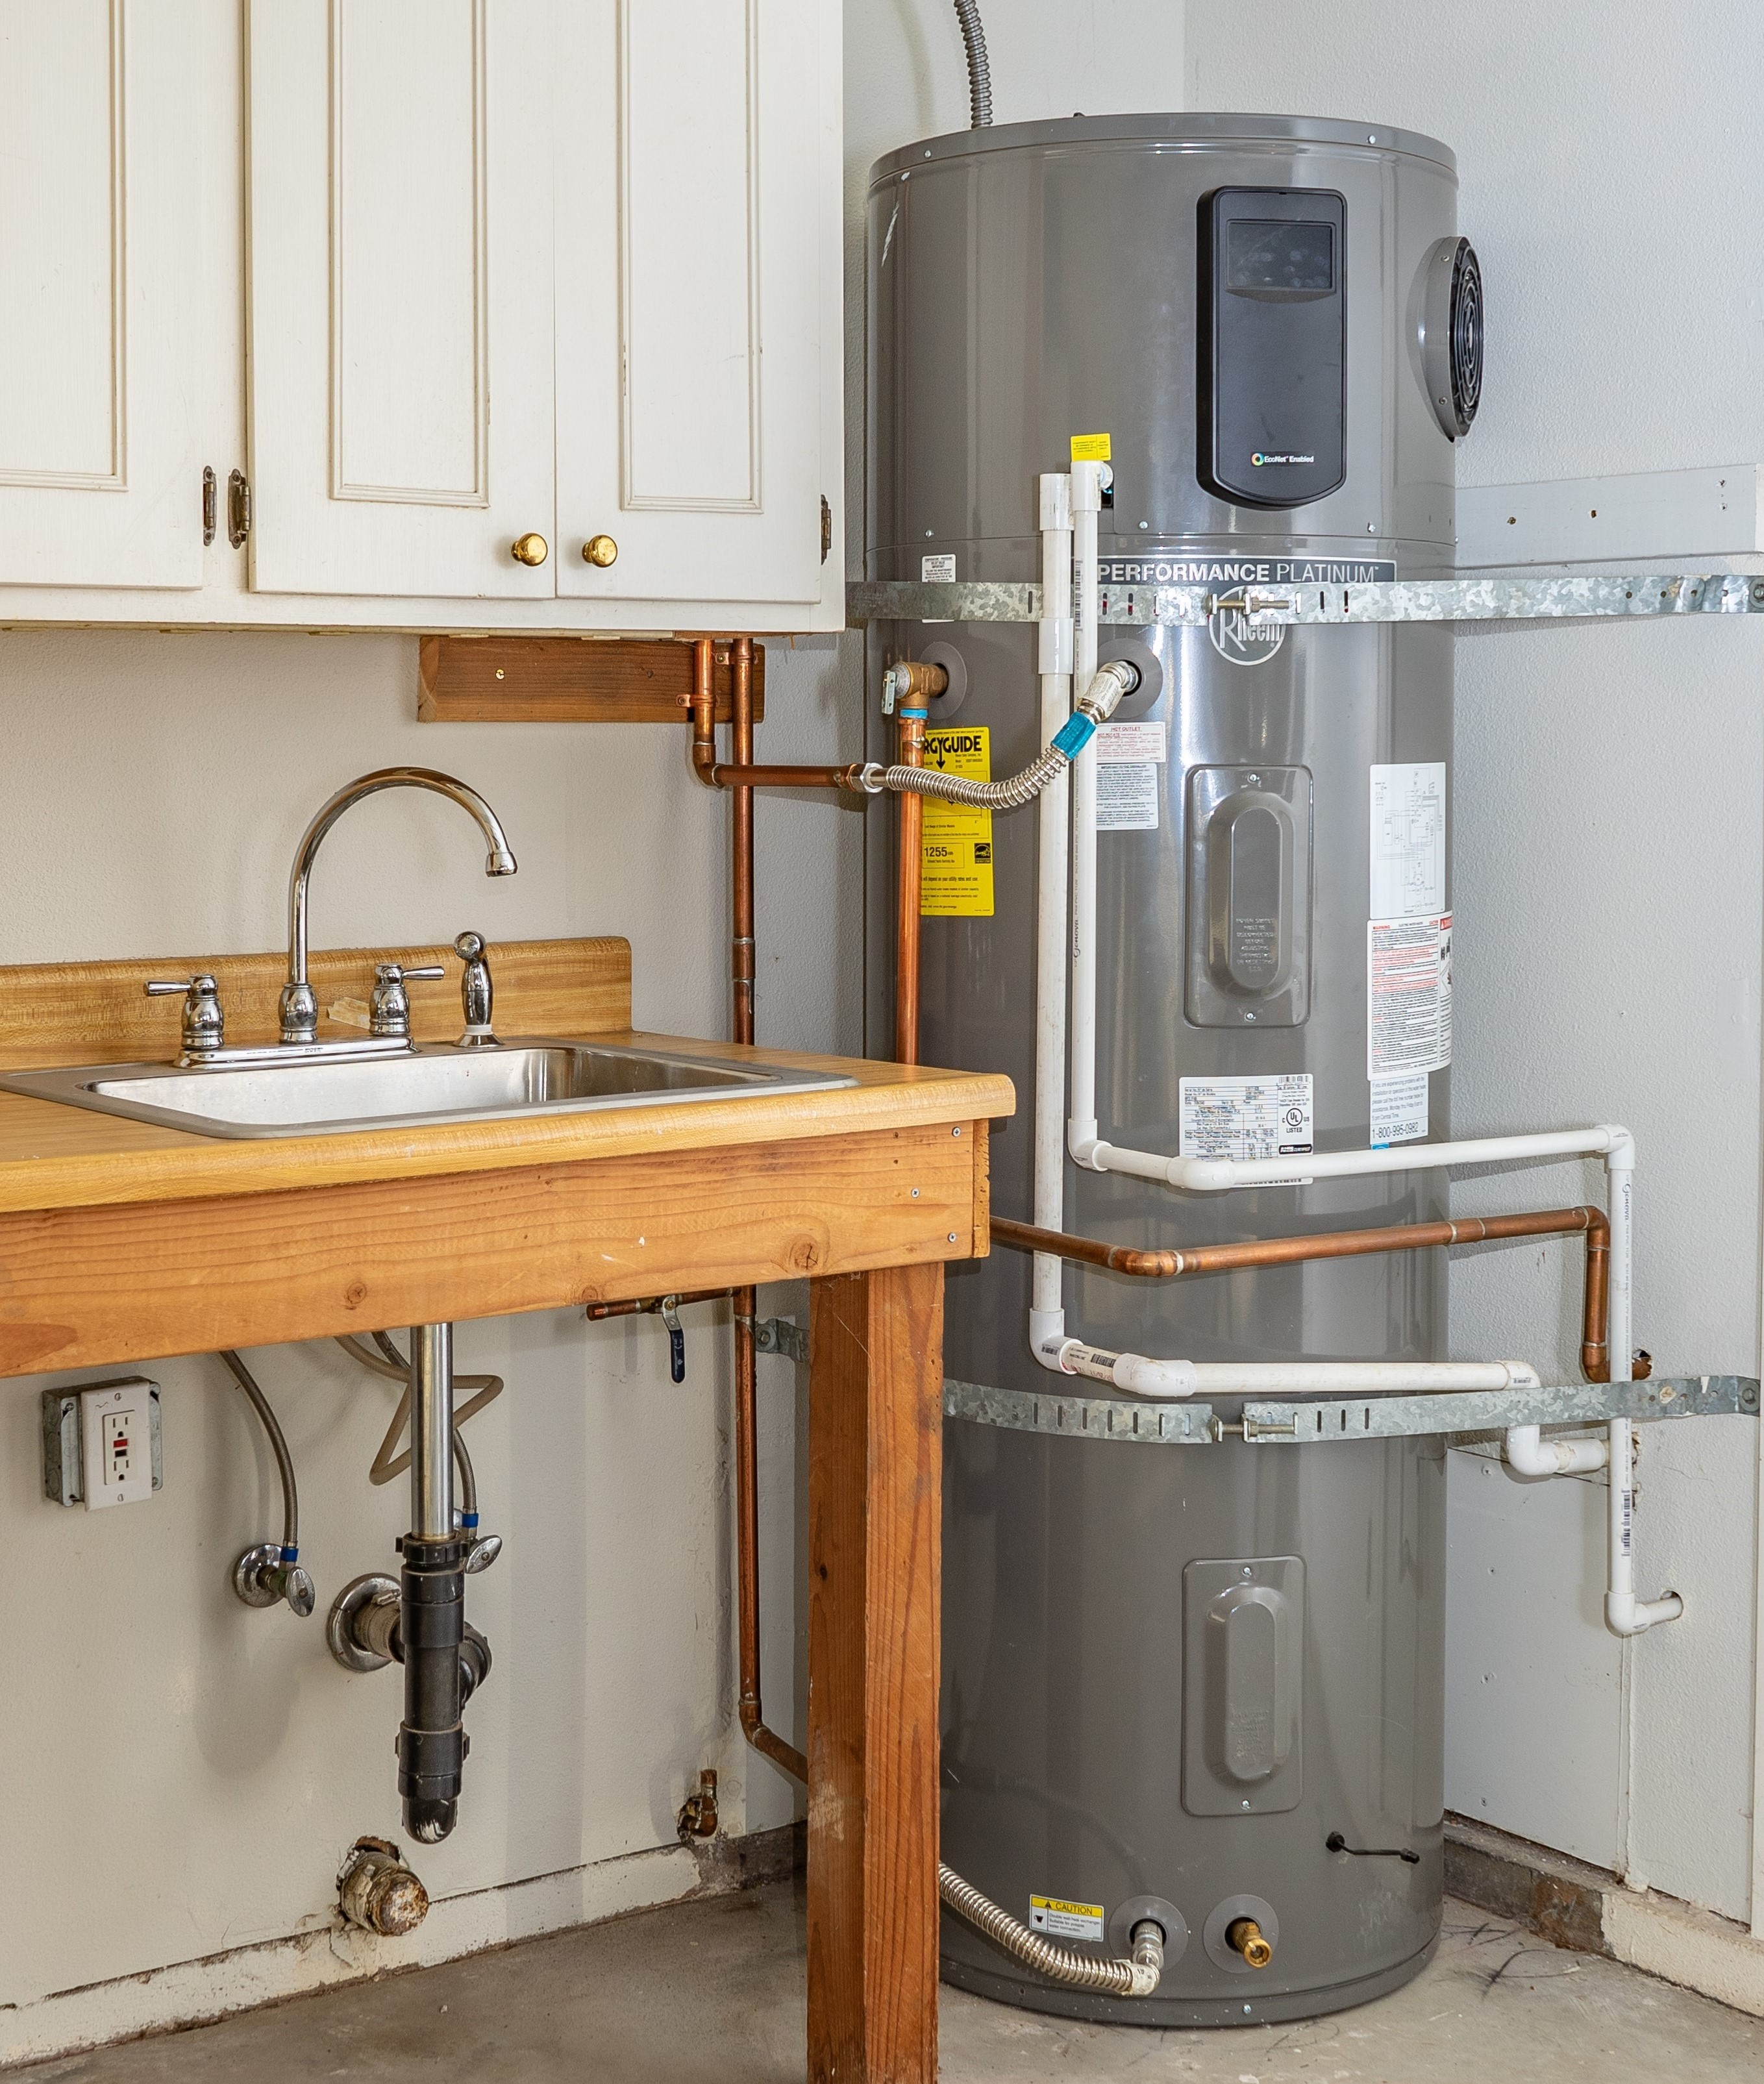 heat pump water heater in garage